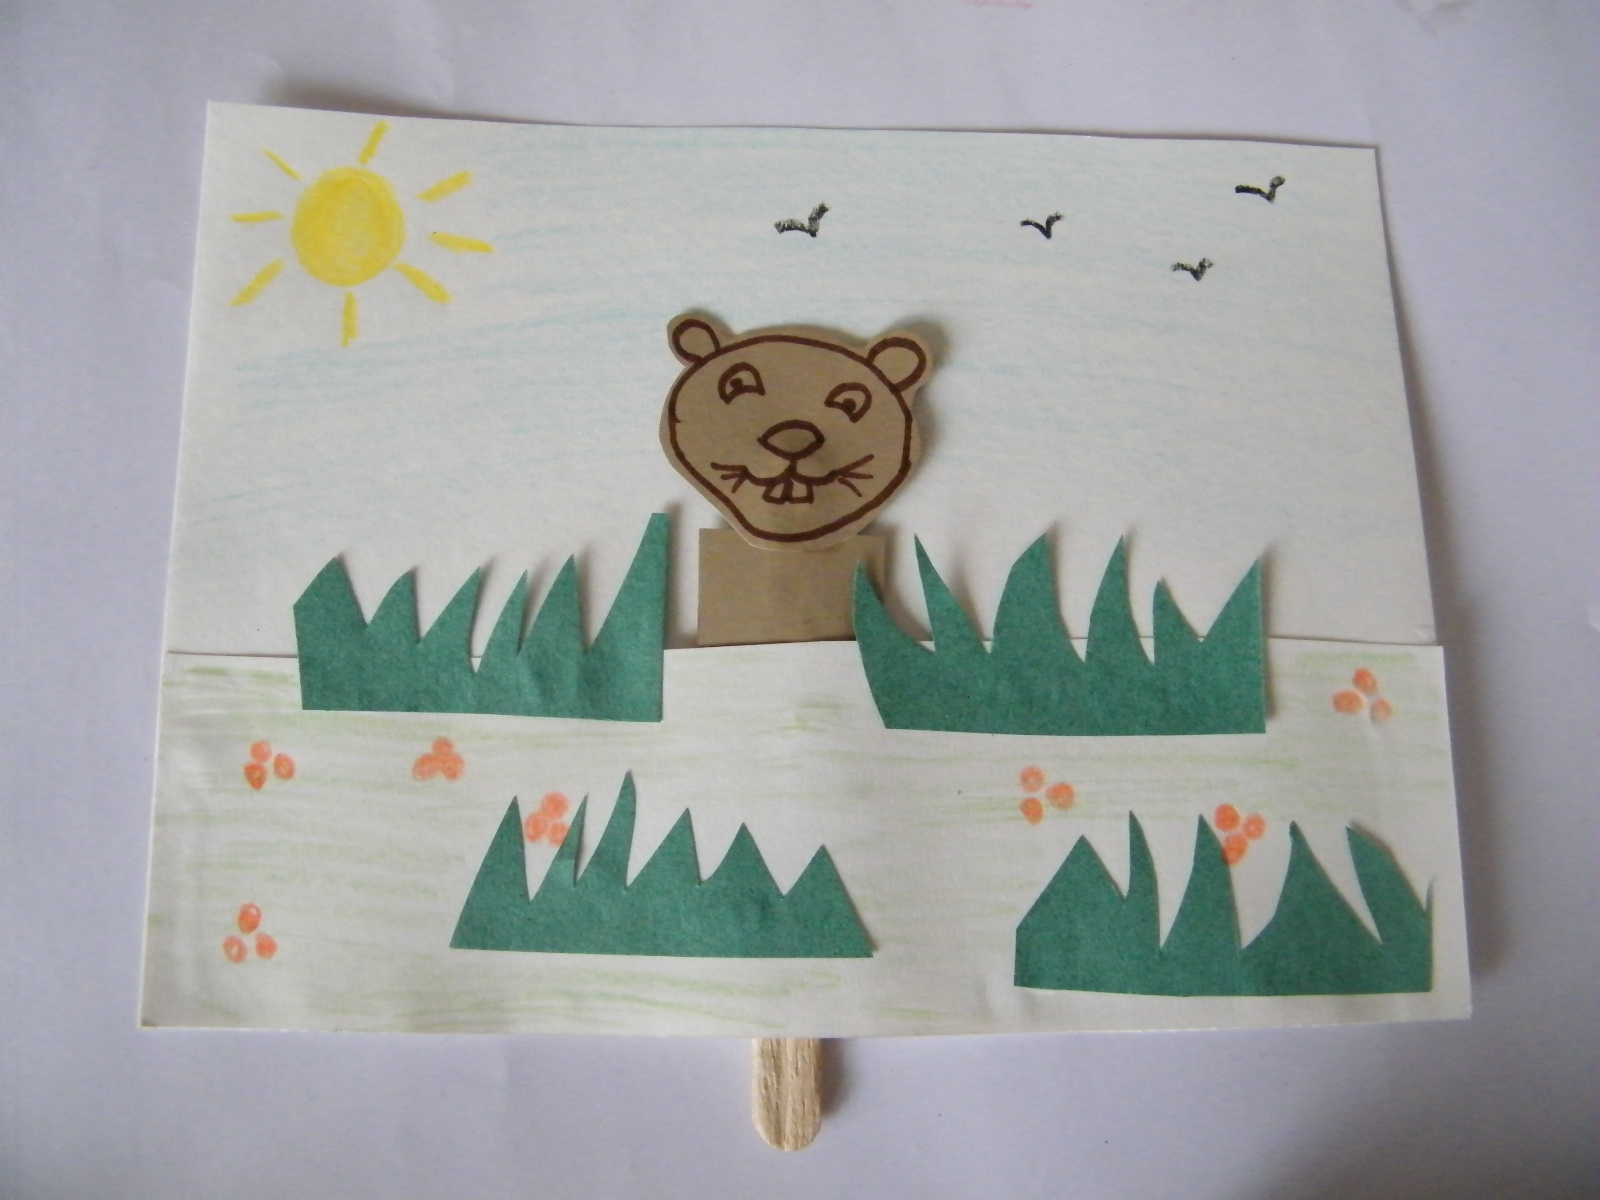 Peeping Groundhogs Craft Activity For Groundhog Day